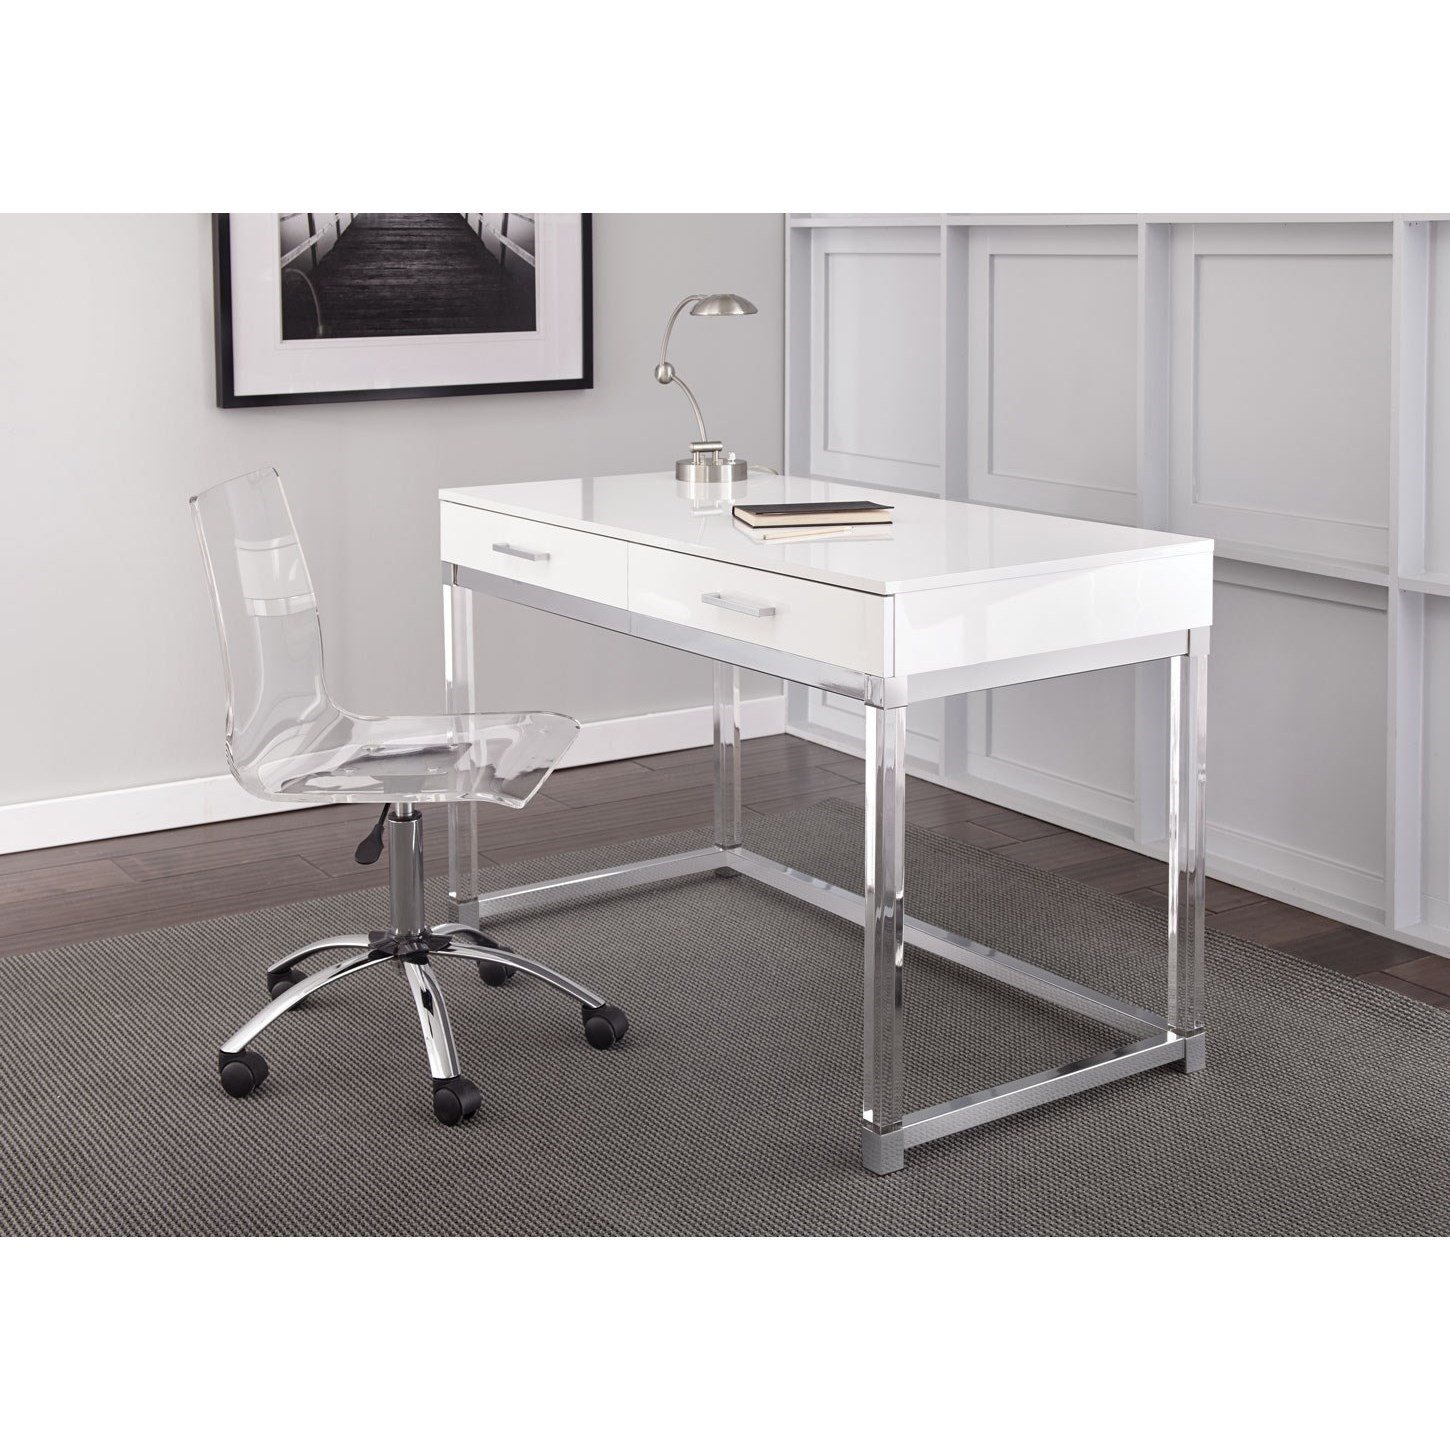 Steve Silver Everett Chrome And Acrylic Writing Desk And Swivel Chair Set